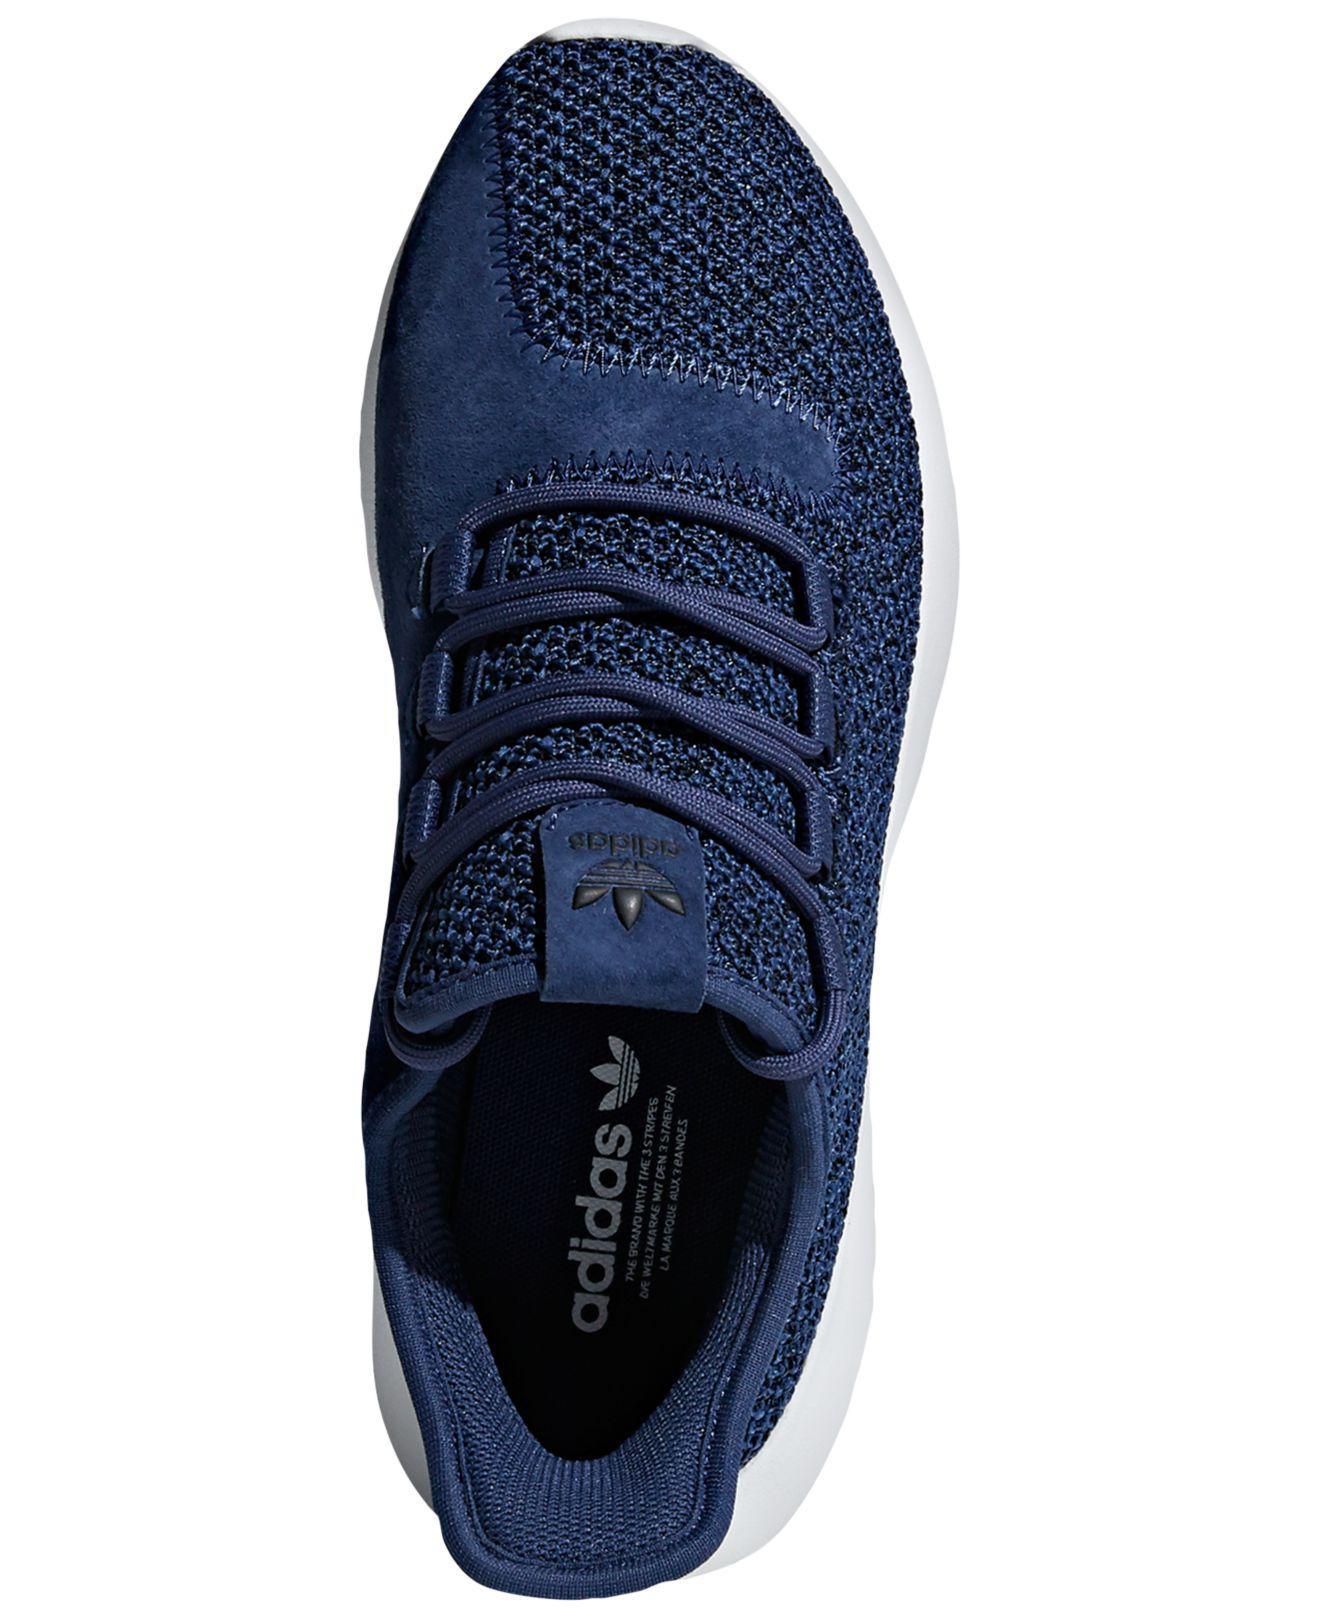 Lyst - Adidas Tubular Shadow Casual Sneakers From Finish Line in Blue 1b97db5532f9